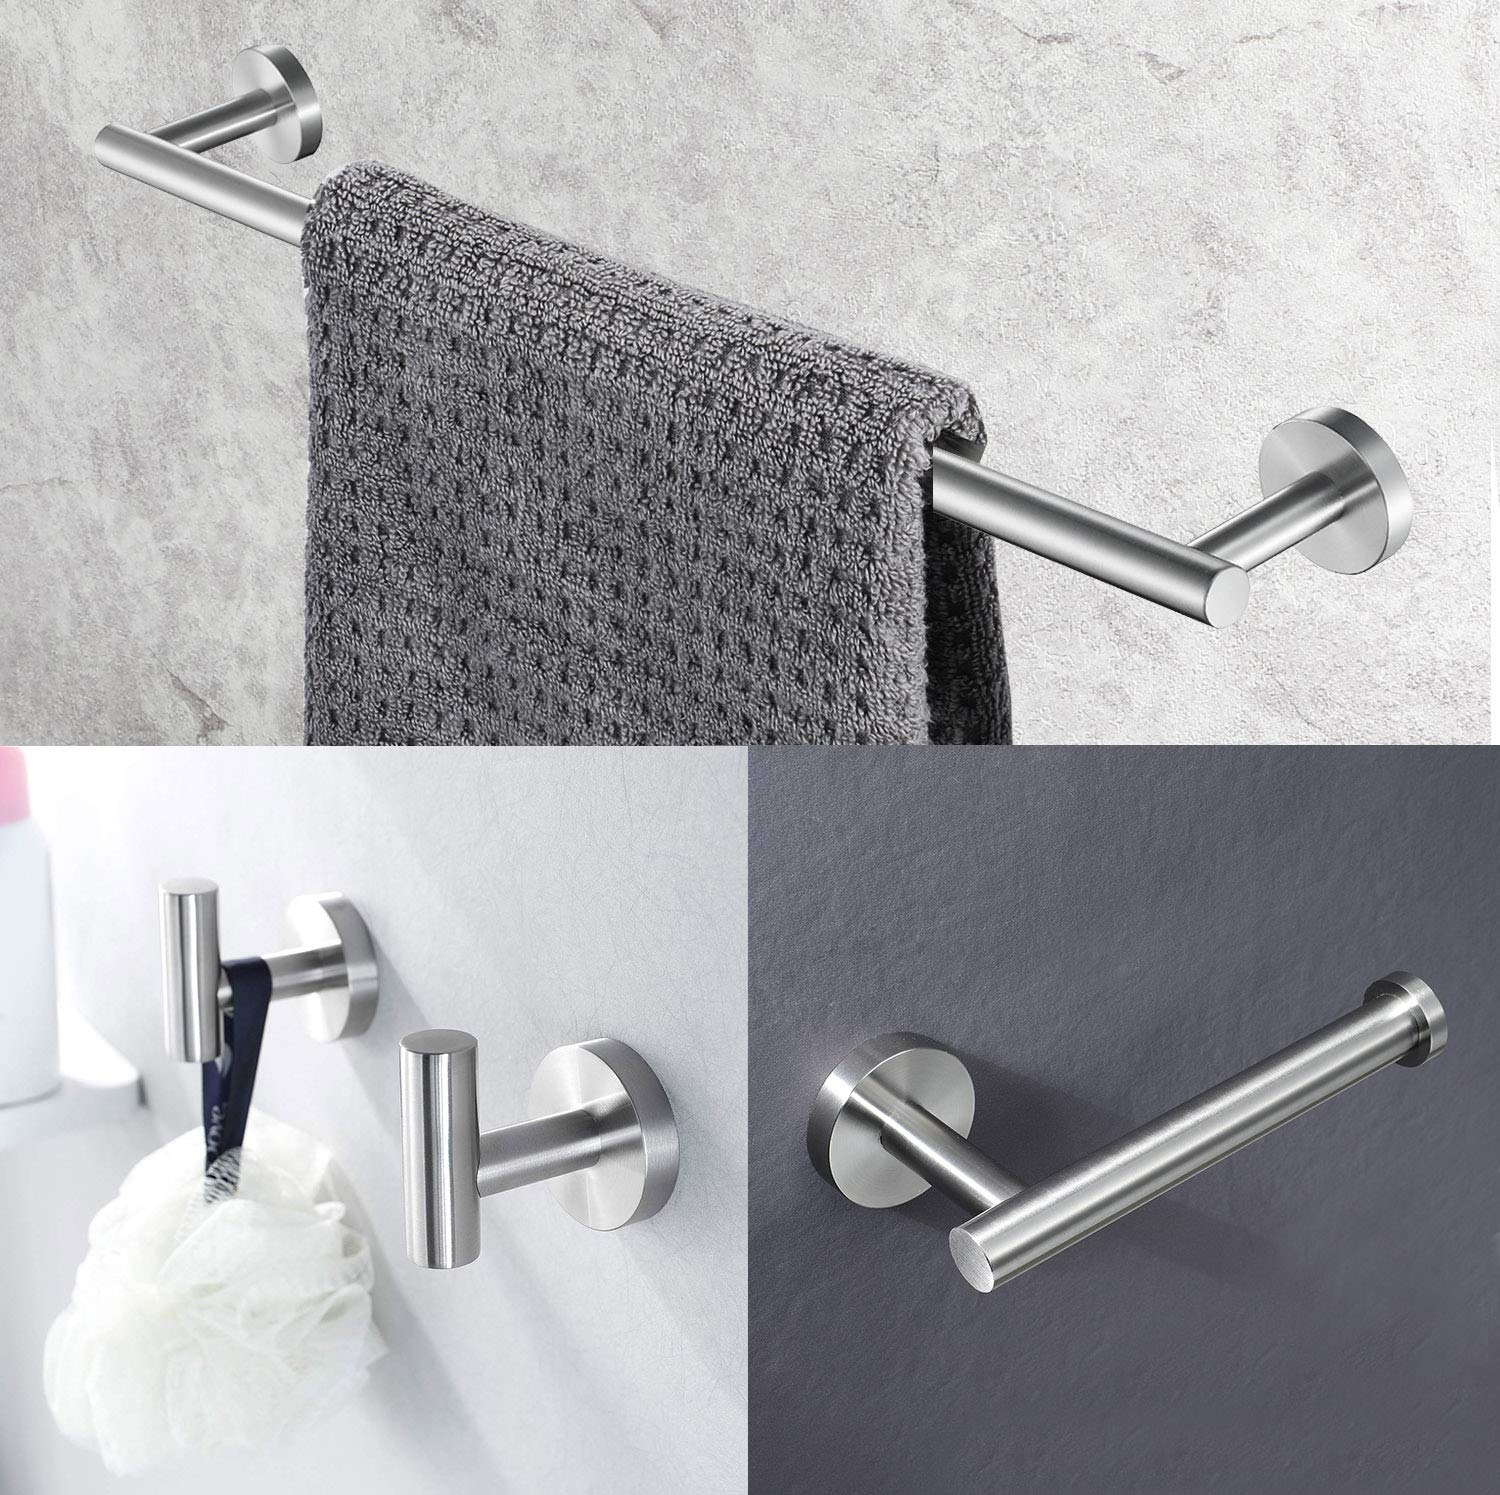 UMIRIO Bathroom Accessories Hardware Set,Bath Towel Bar Holder Set 18-Inch 4 Piece,Bathroom Hanging Set,Toilet Paper Holder, Wall Hooks Hangingx2,Hardware Included,Wall Mounted,Brushed,Stainless Steel